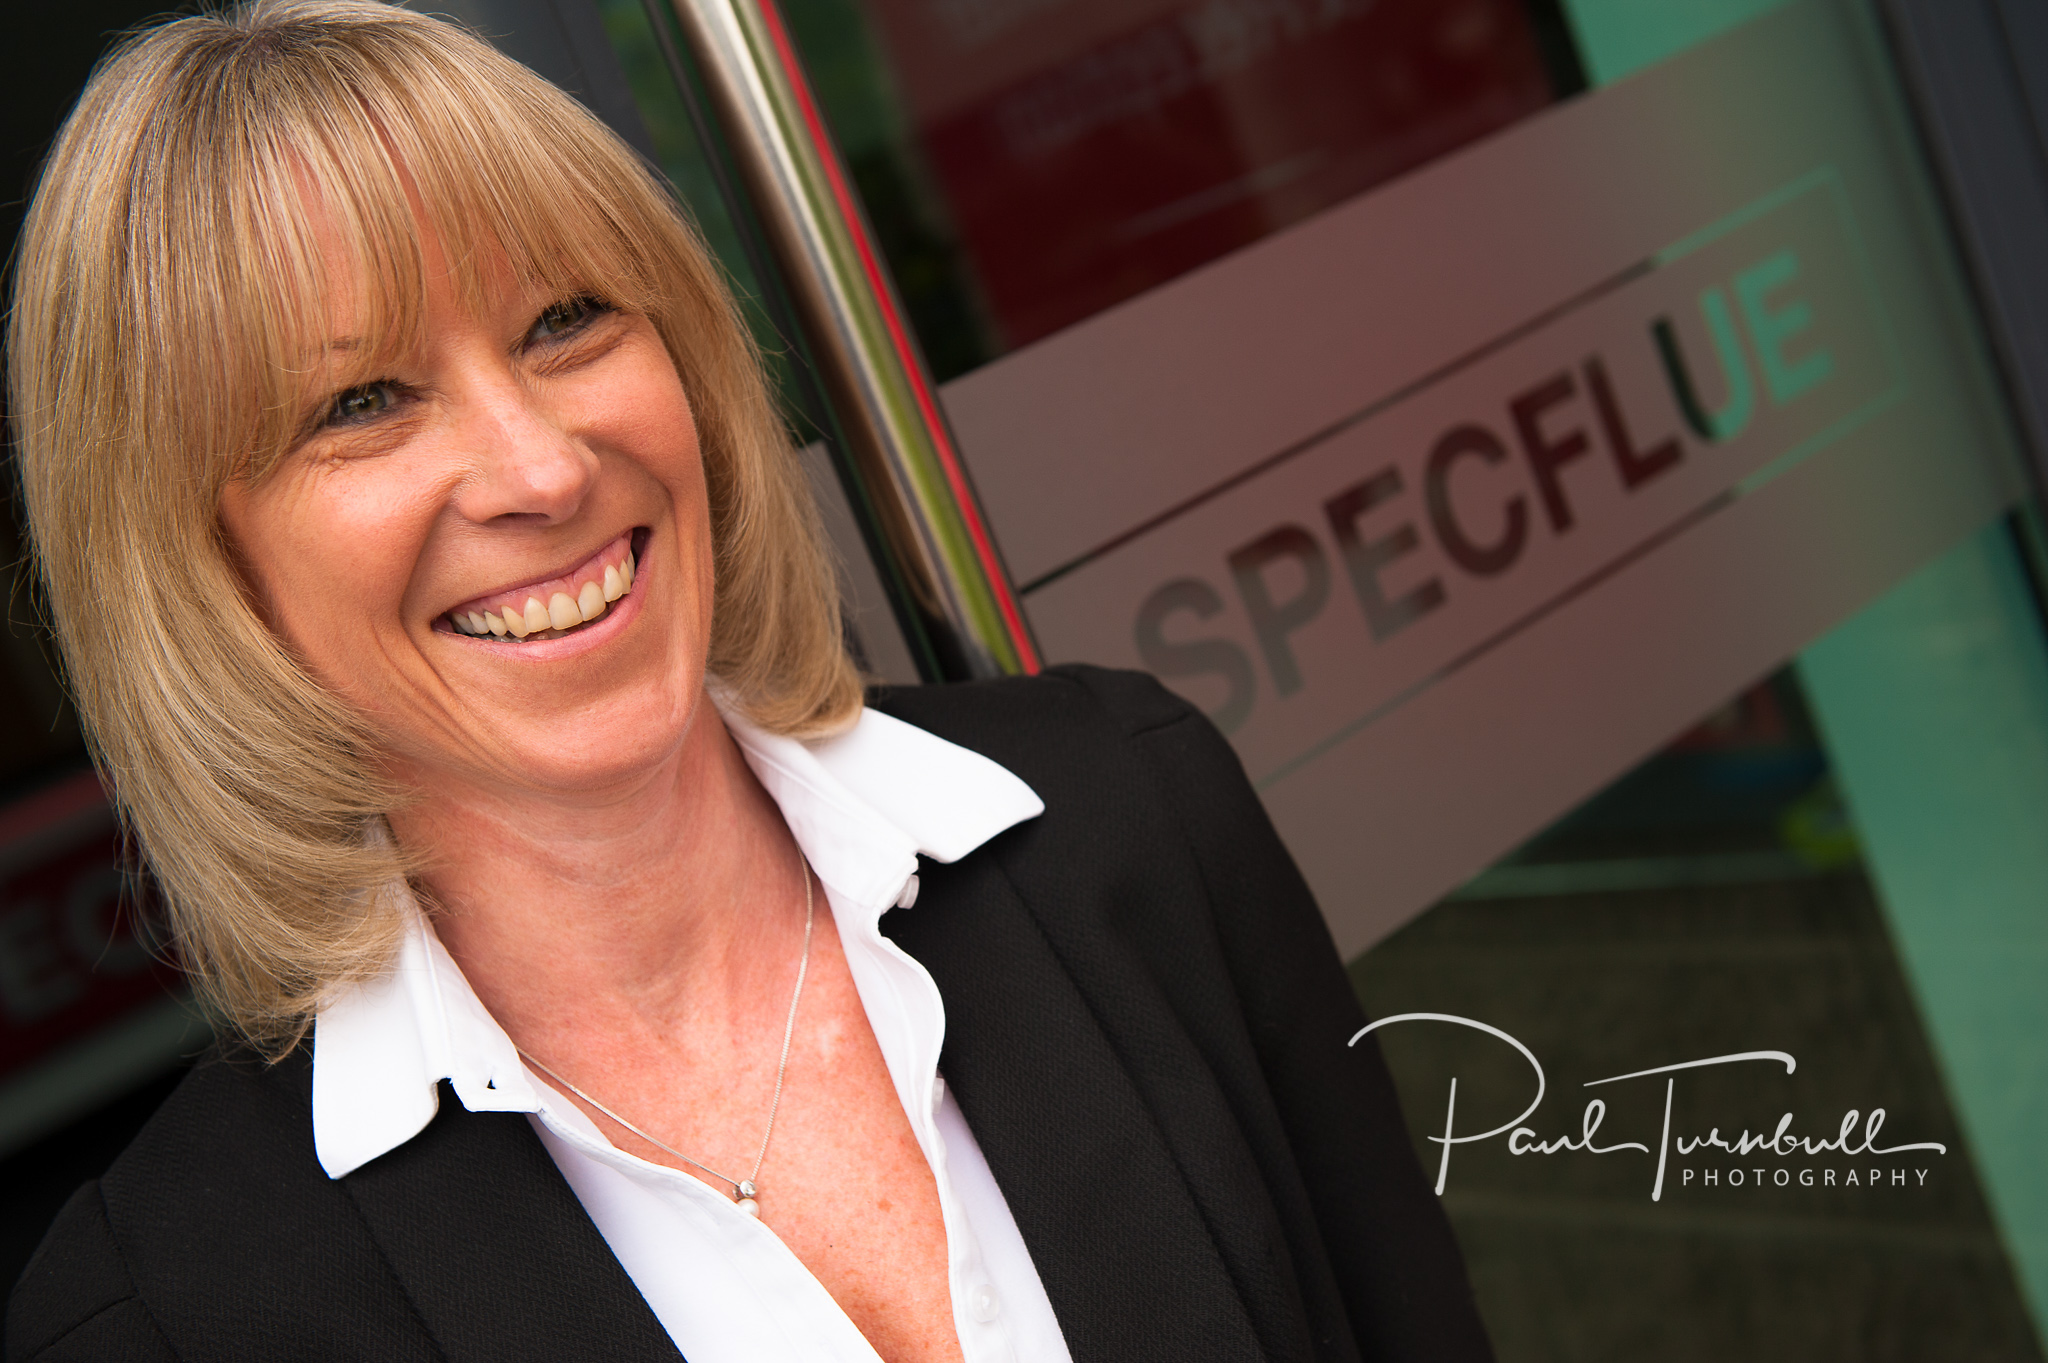 commercial-pr-photographer-leeds-yorkshire-specflue-007.jpg